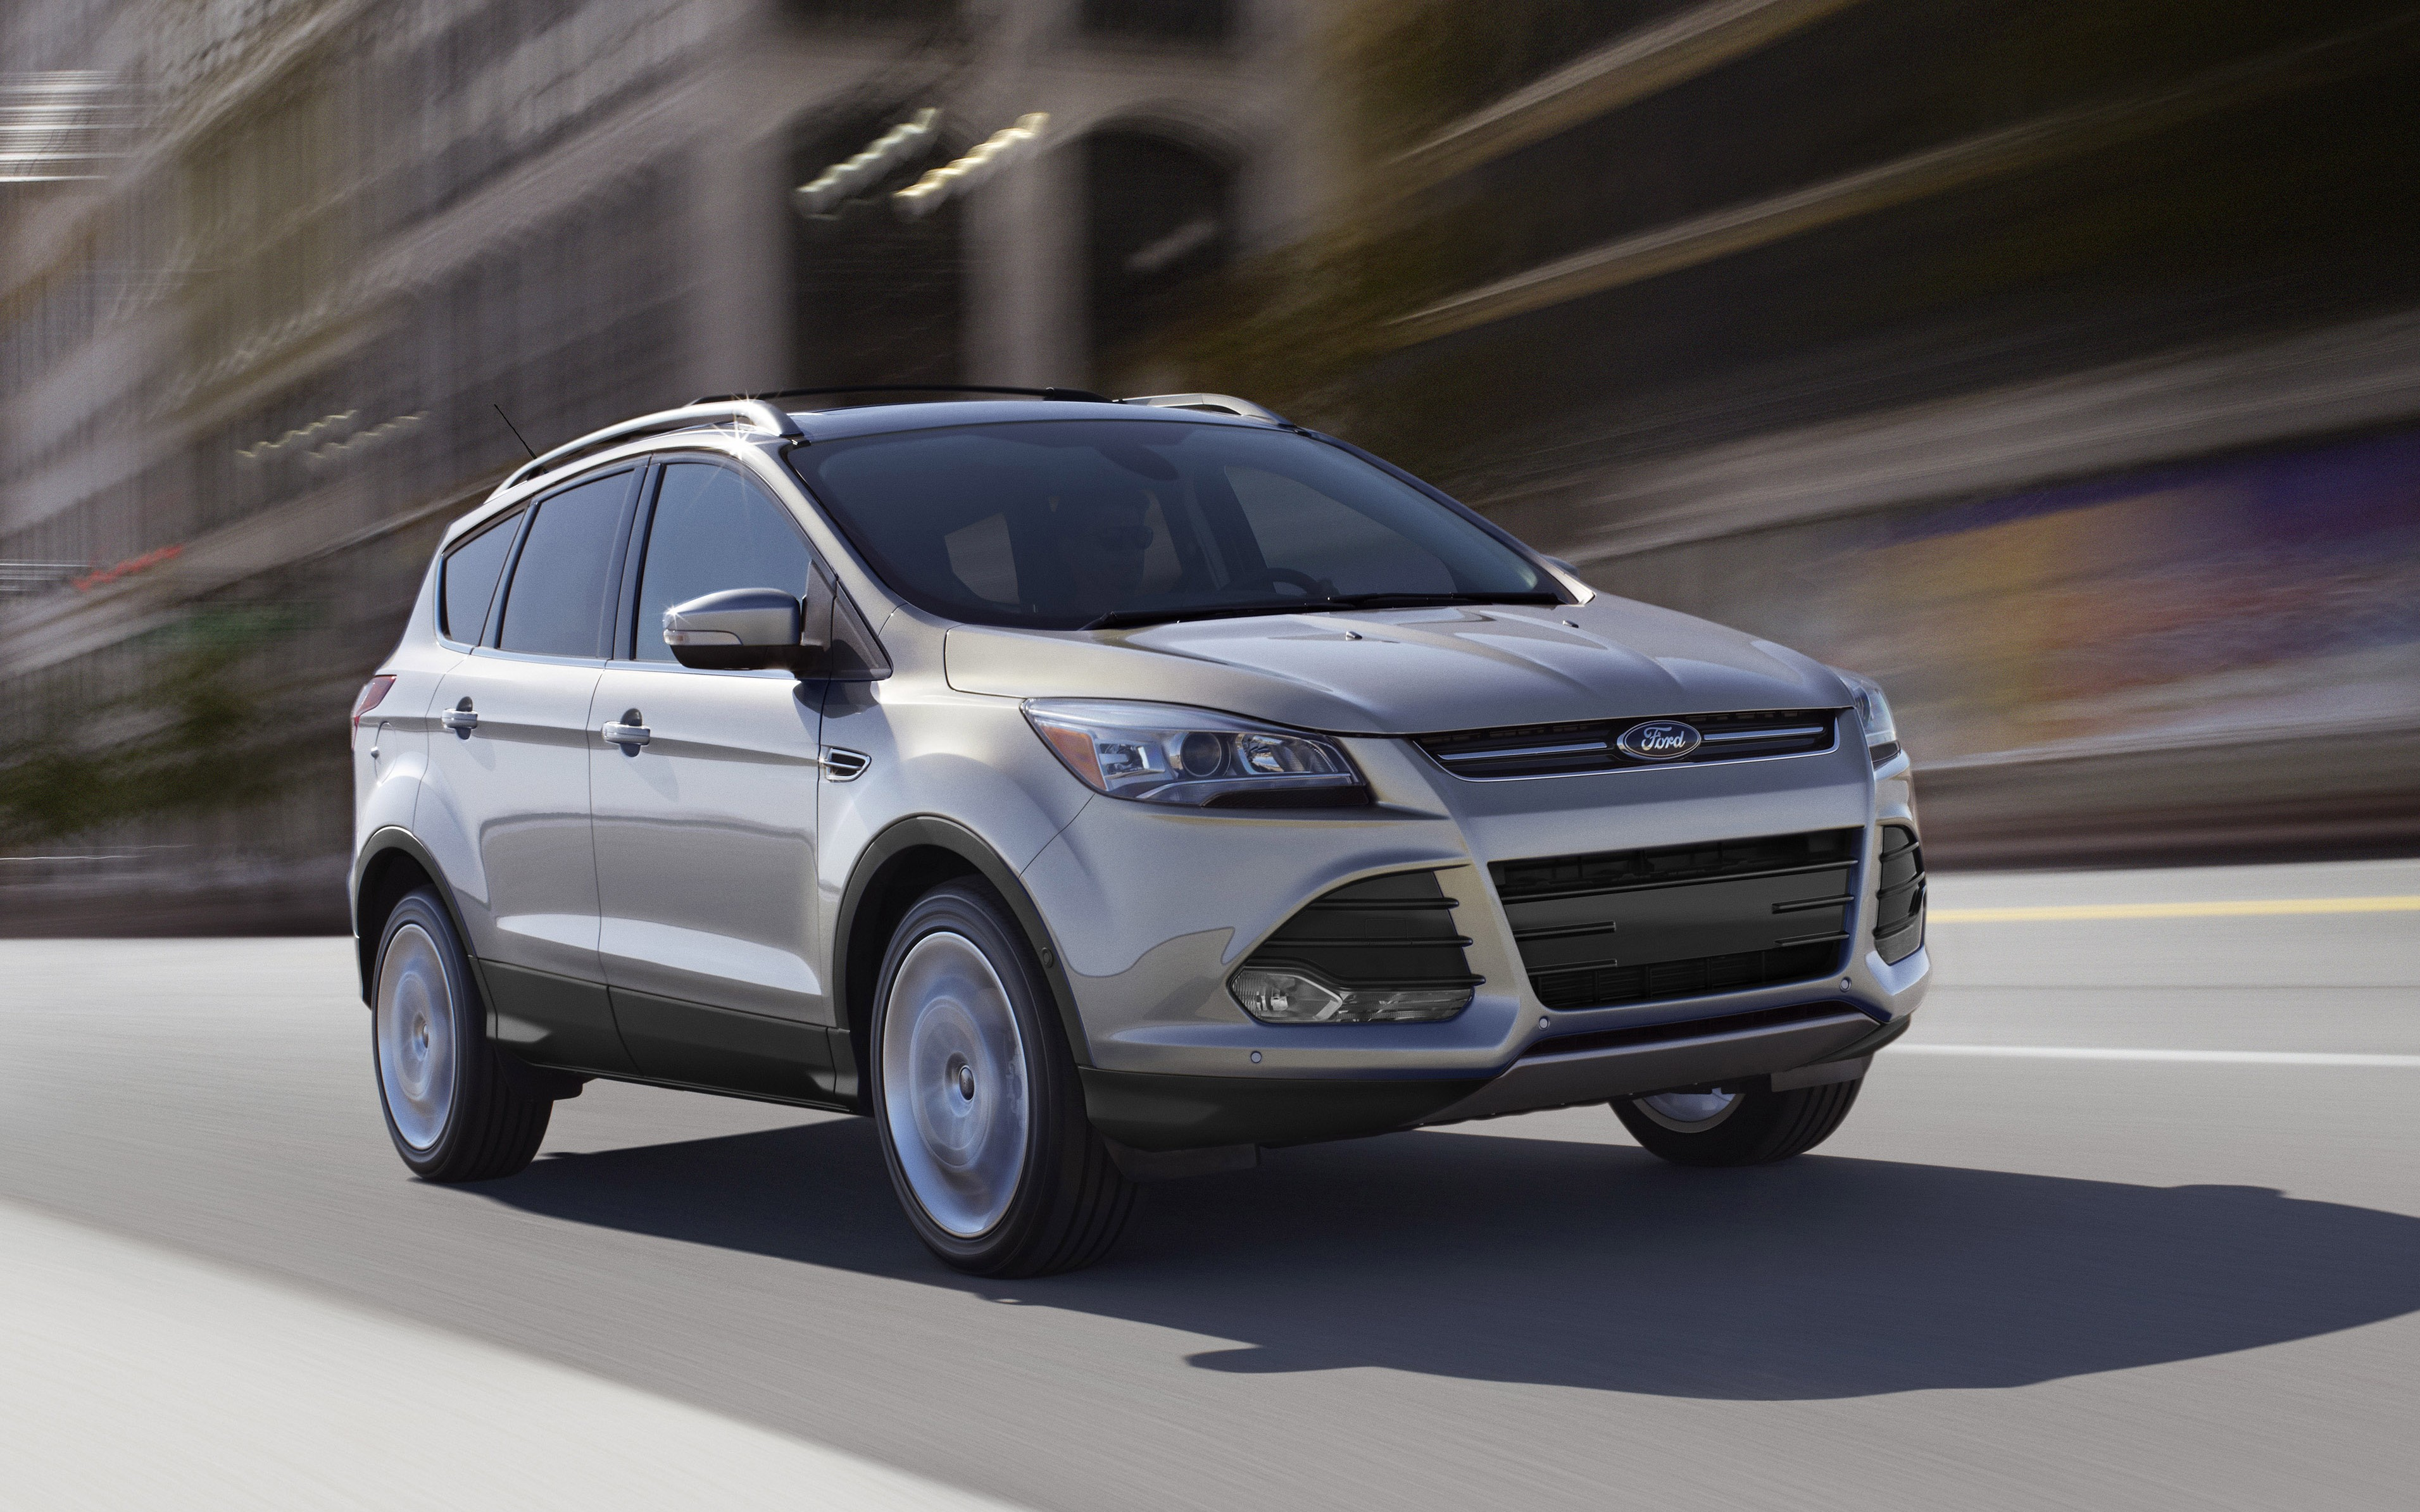 2014 ford escape_100443585_h ford recalls 2013 14 ford escape & focus st; 2015 ford transit ford escape wiring harness recall at crackthecode.co